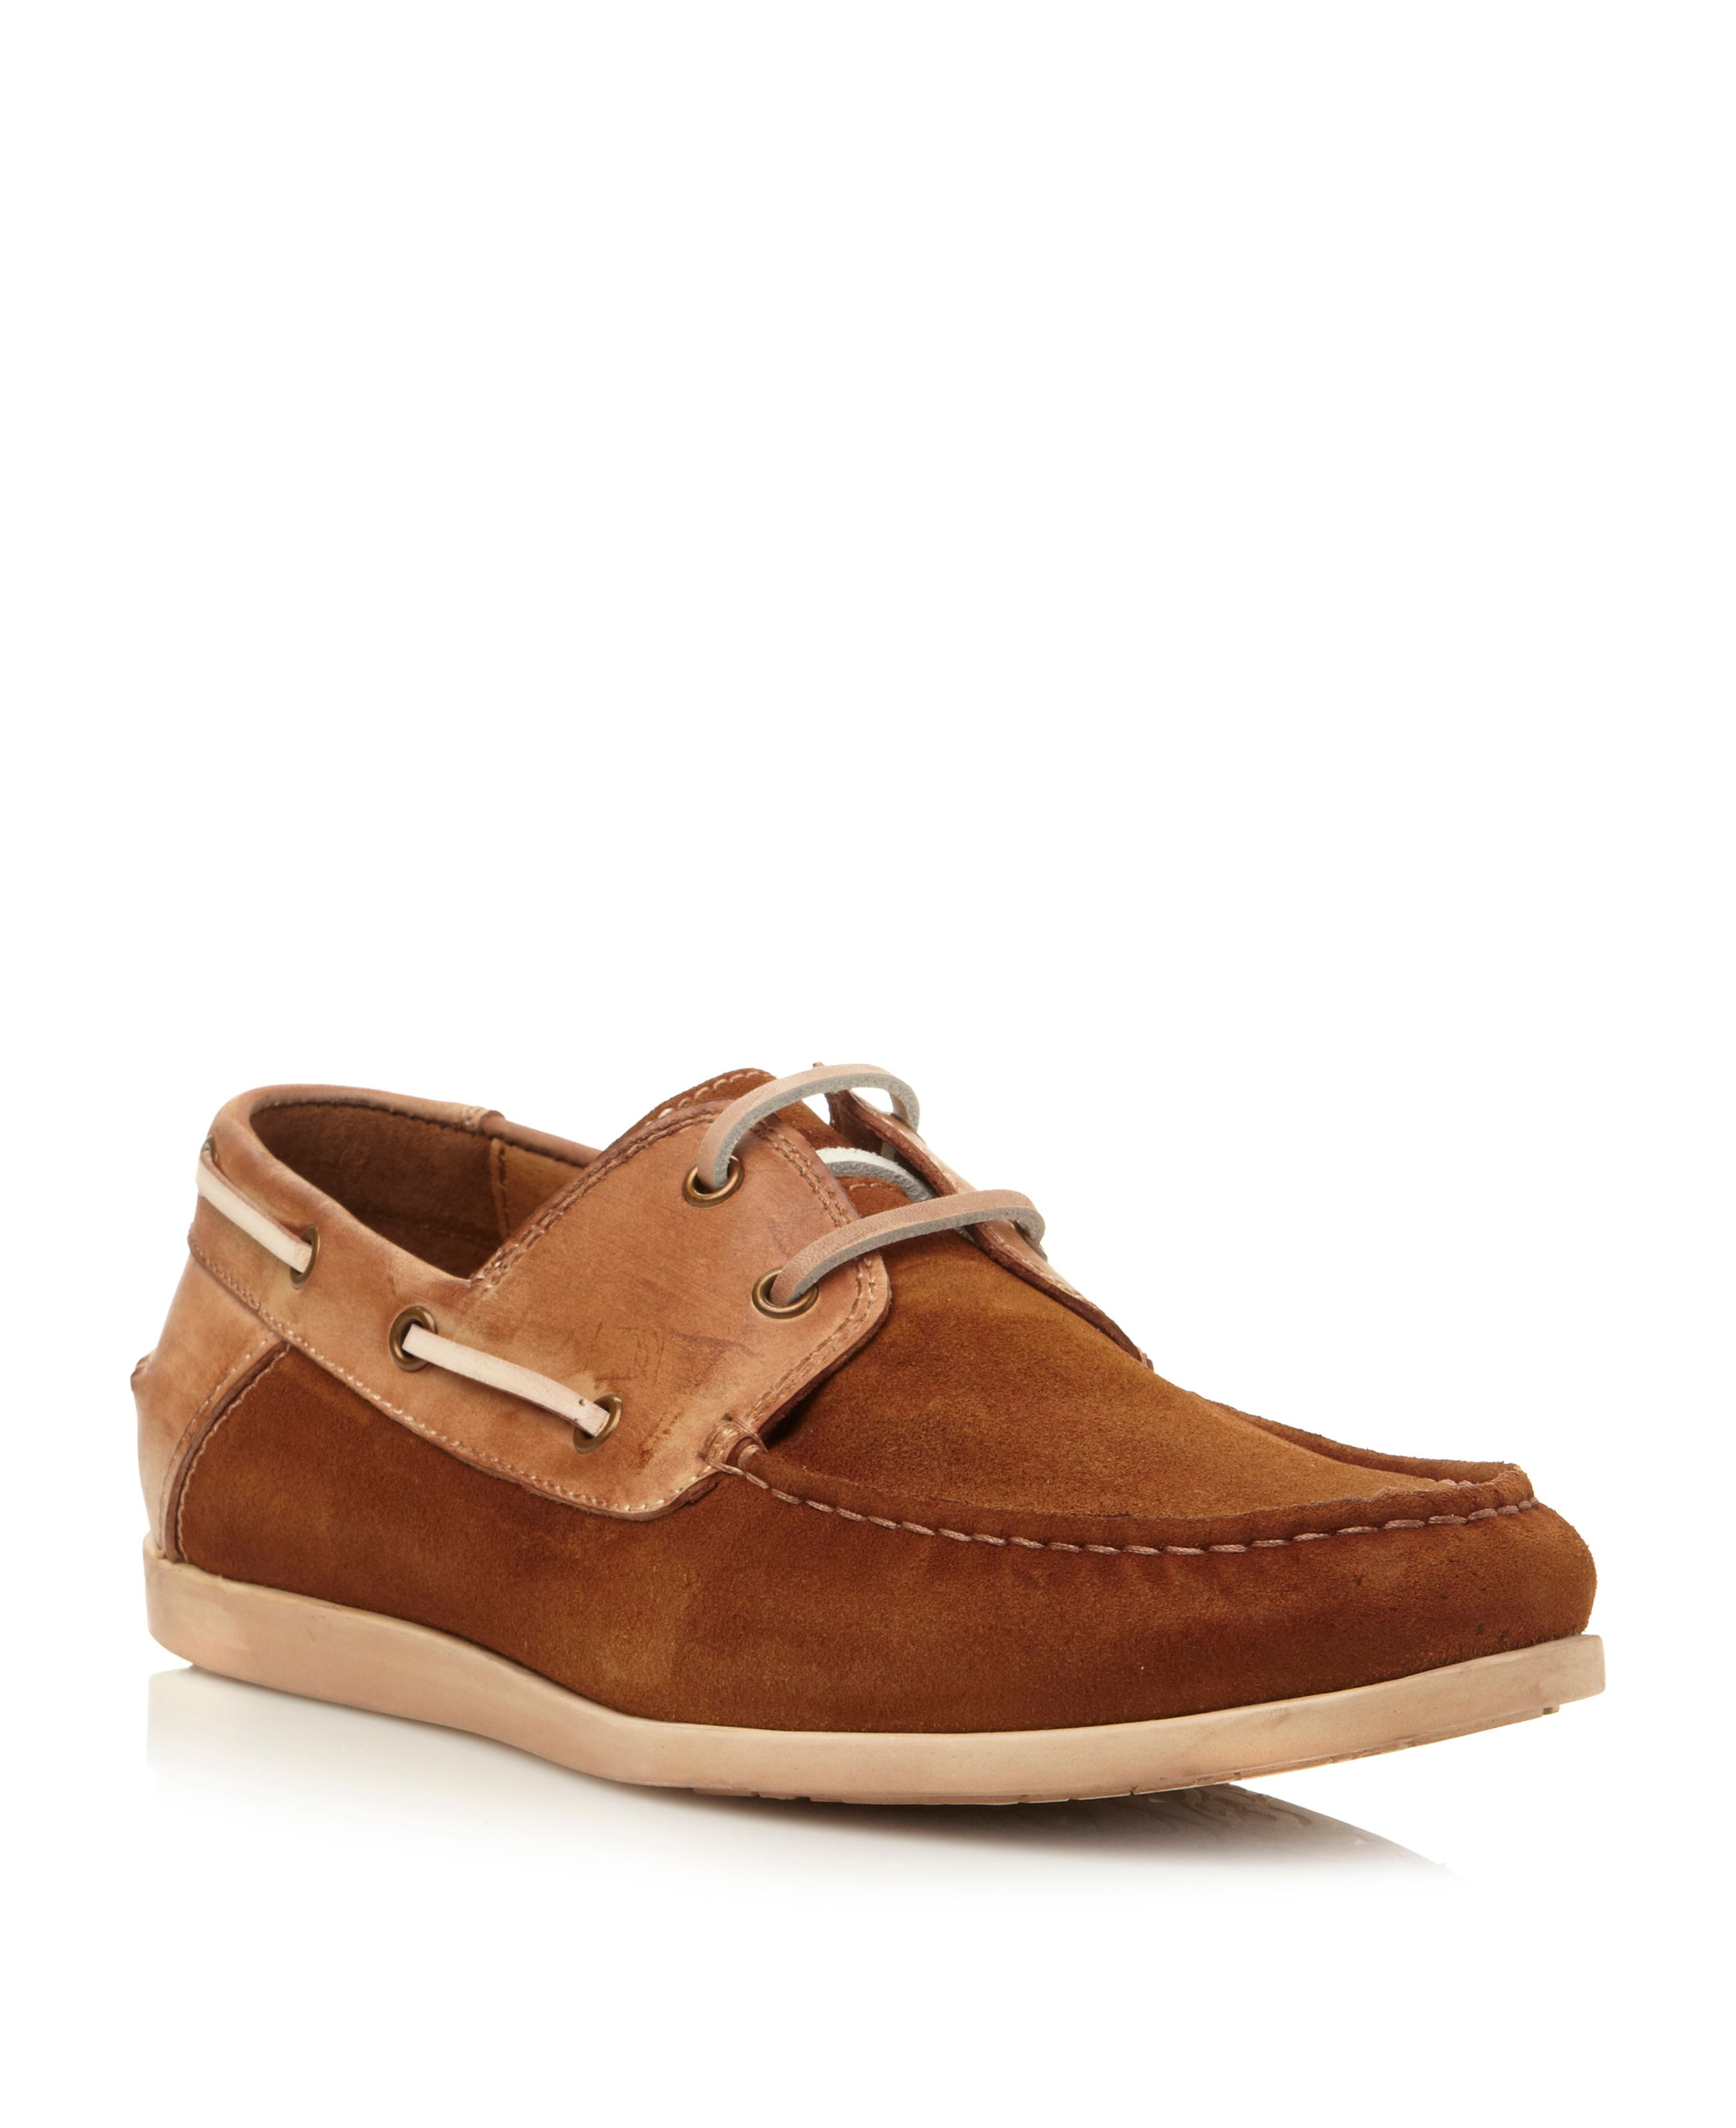 Steve madden Qnsboro Lace Up Combo Boat Shoes in Brown for Men | Lyst